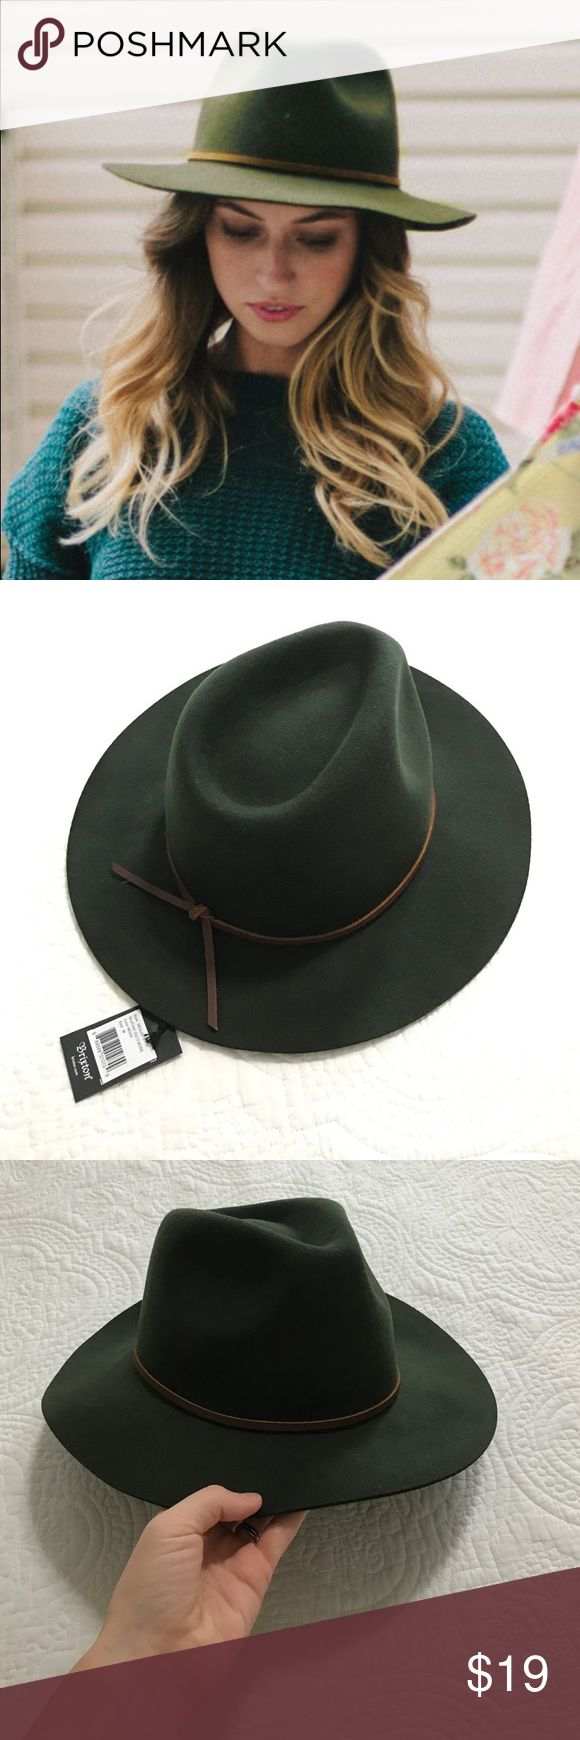 "Heather Moss Brixton Wesley fedora - unisex Brand new with tags Brixton Wesley fedora. Gorgeous moss green color with genuine leather band. Size M (7 1/4; 58cm). My head measures 23"" around (huge, I know) and this hat fits me. Gorgeous quality wool felt with a floppy brim. Unisex style is perfect for men and women! Let me know of any questions! Brixton Accessories Hats"